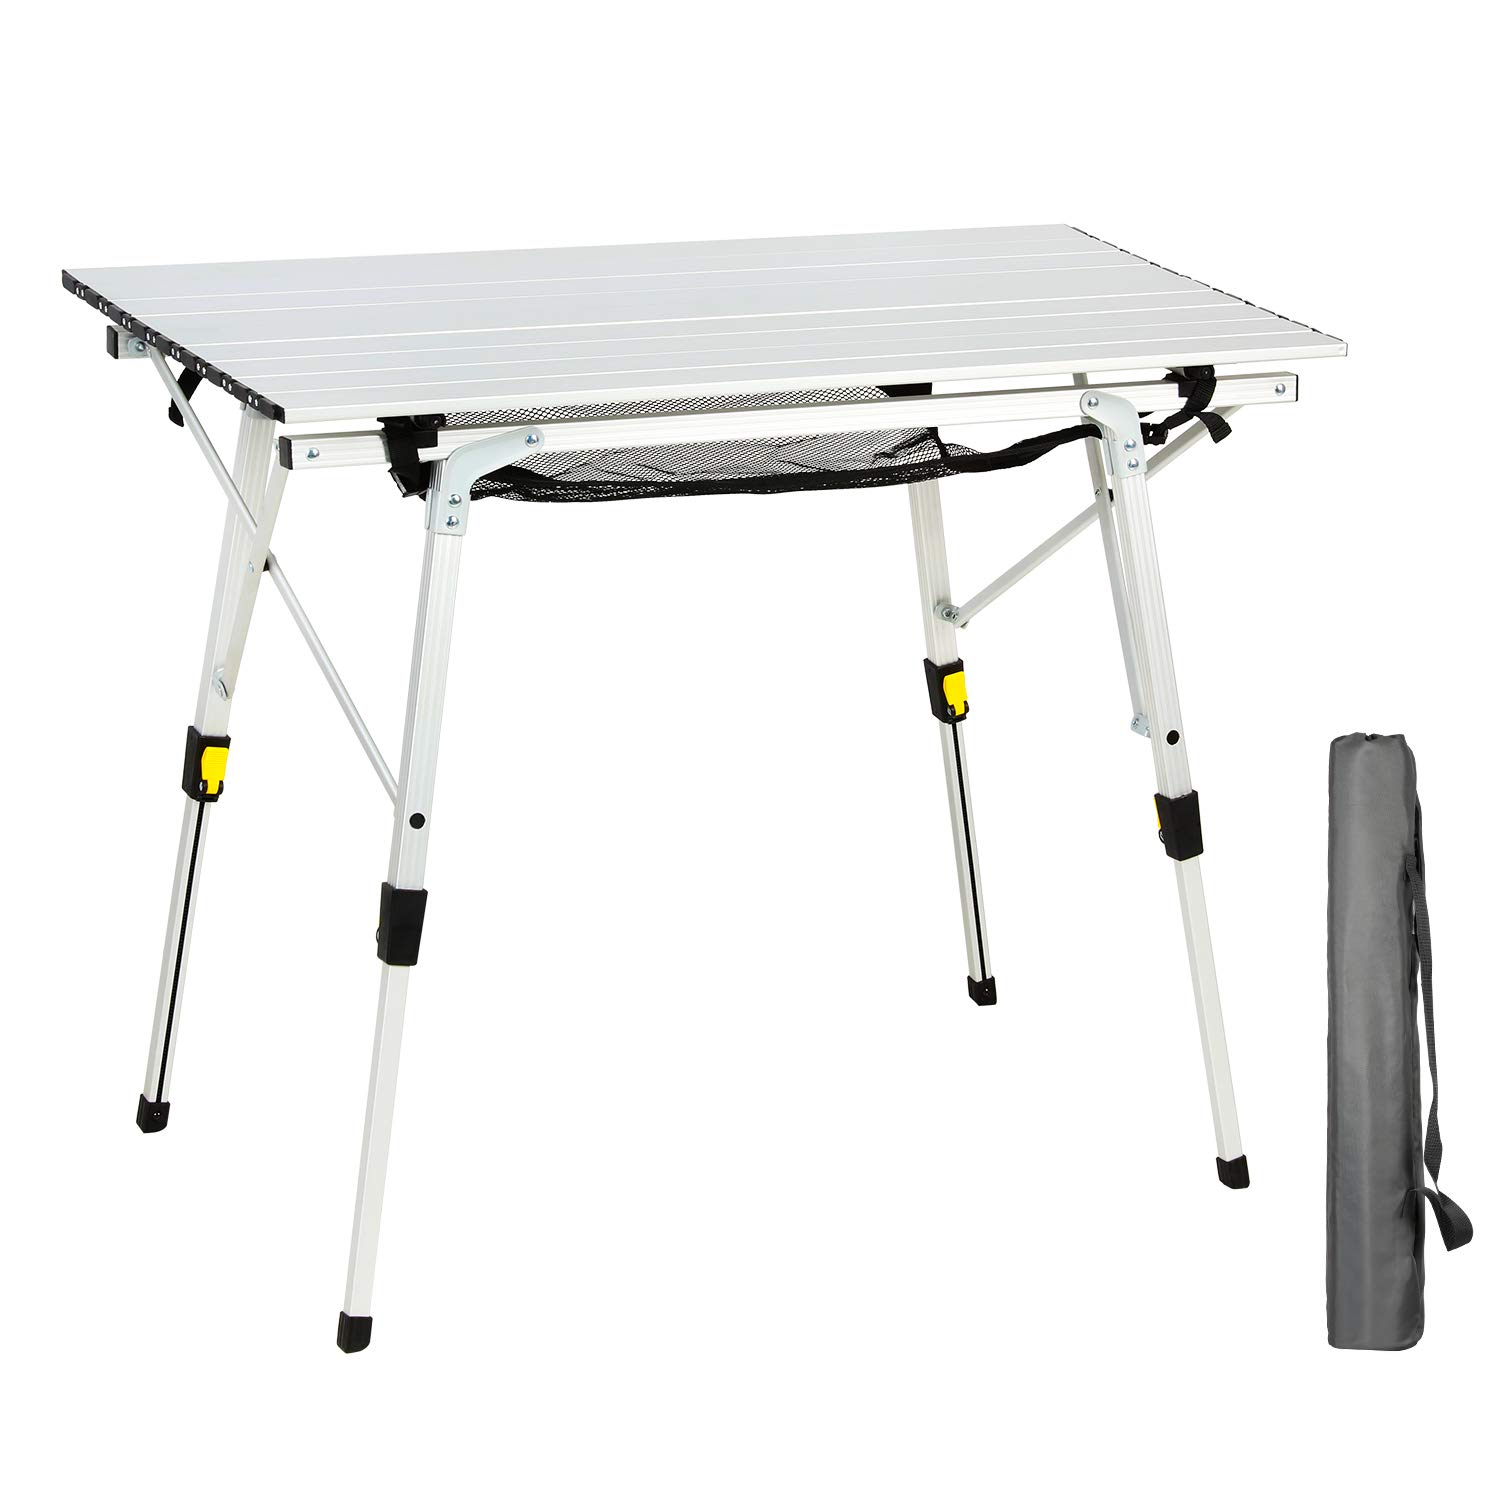 PORTAL Outdoor Folding Portable Picnic Camping Table with Adjustable Height Aluminum Roll Up Table Top Mesh Layer by PORTAL